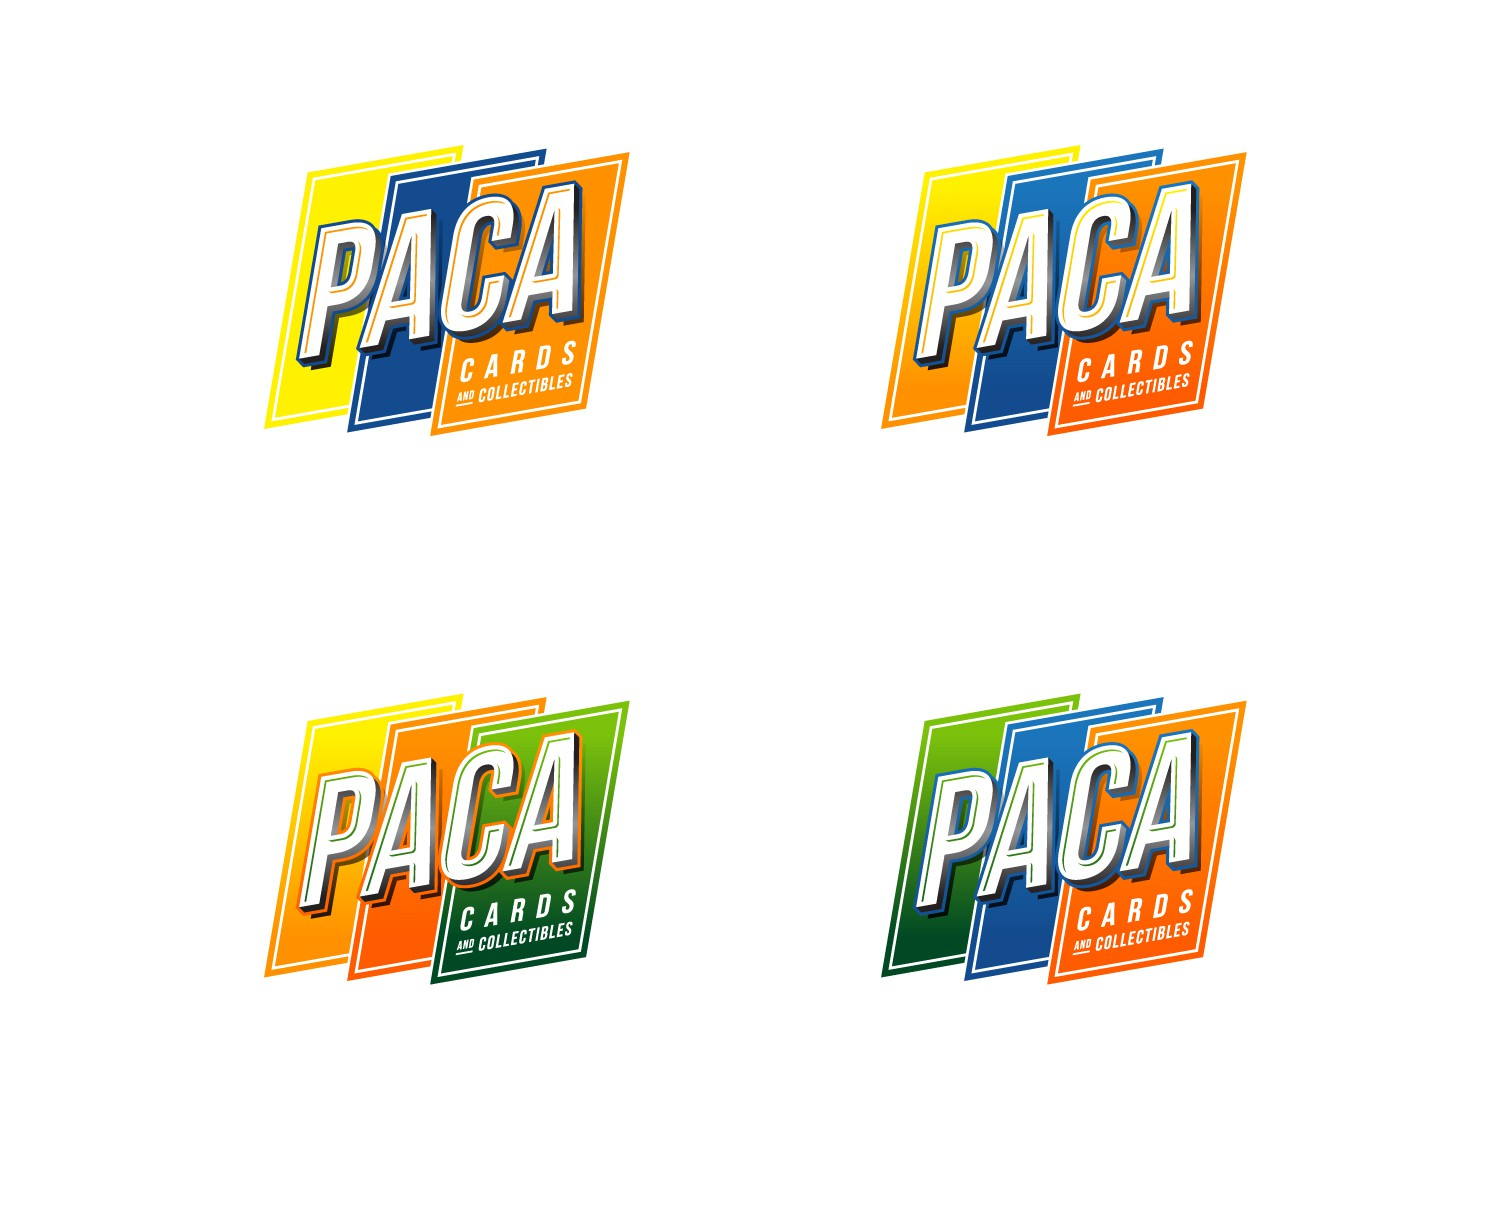 Create a logo for PACA Cards, an sports cards/memorabilia store